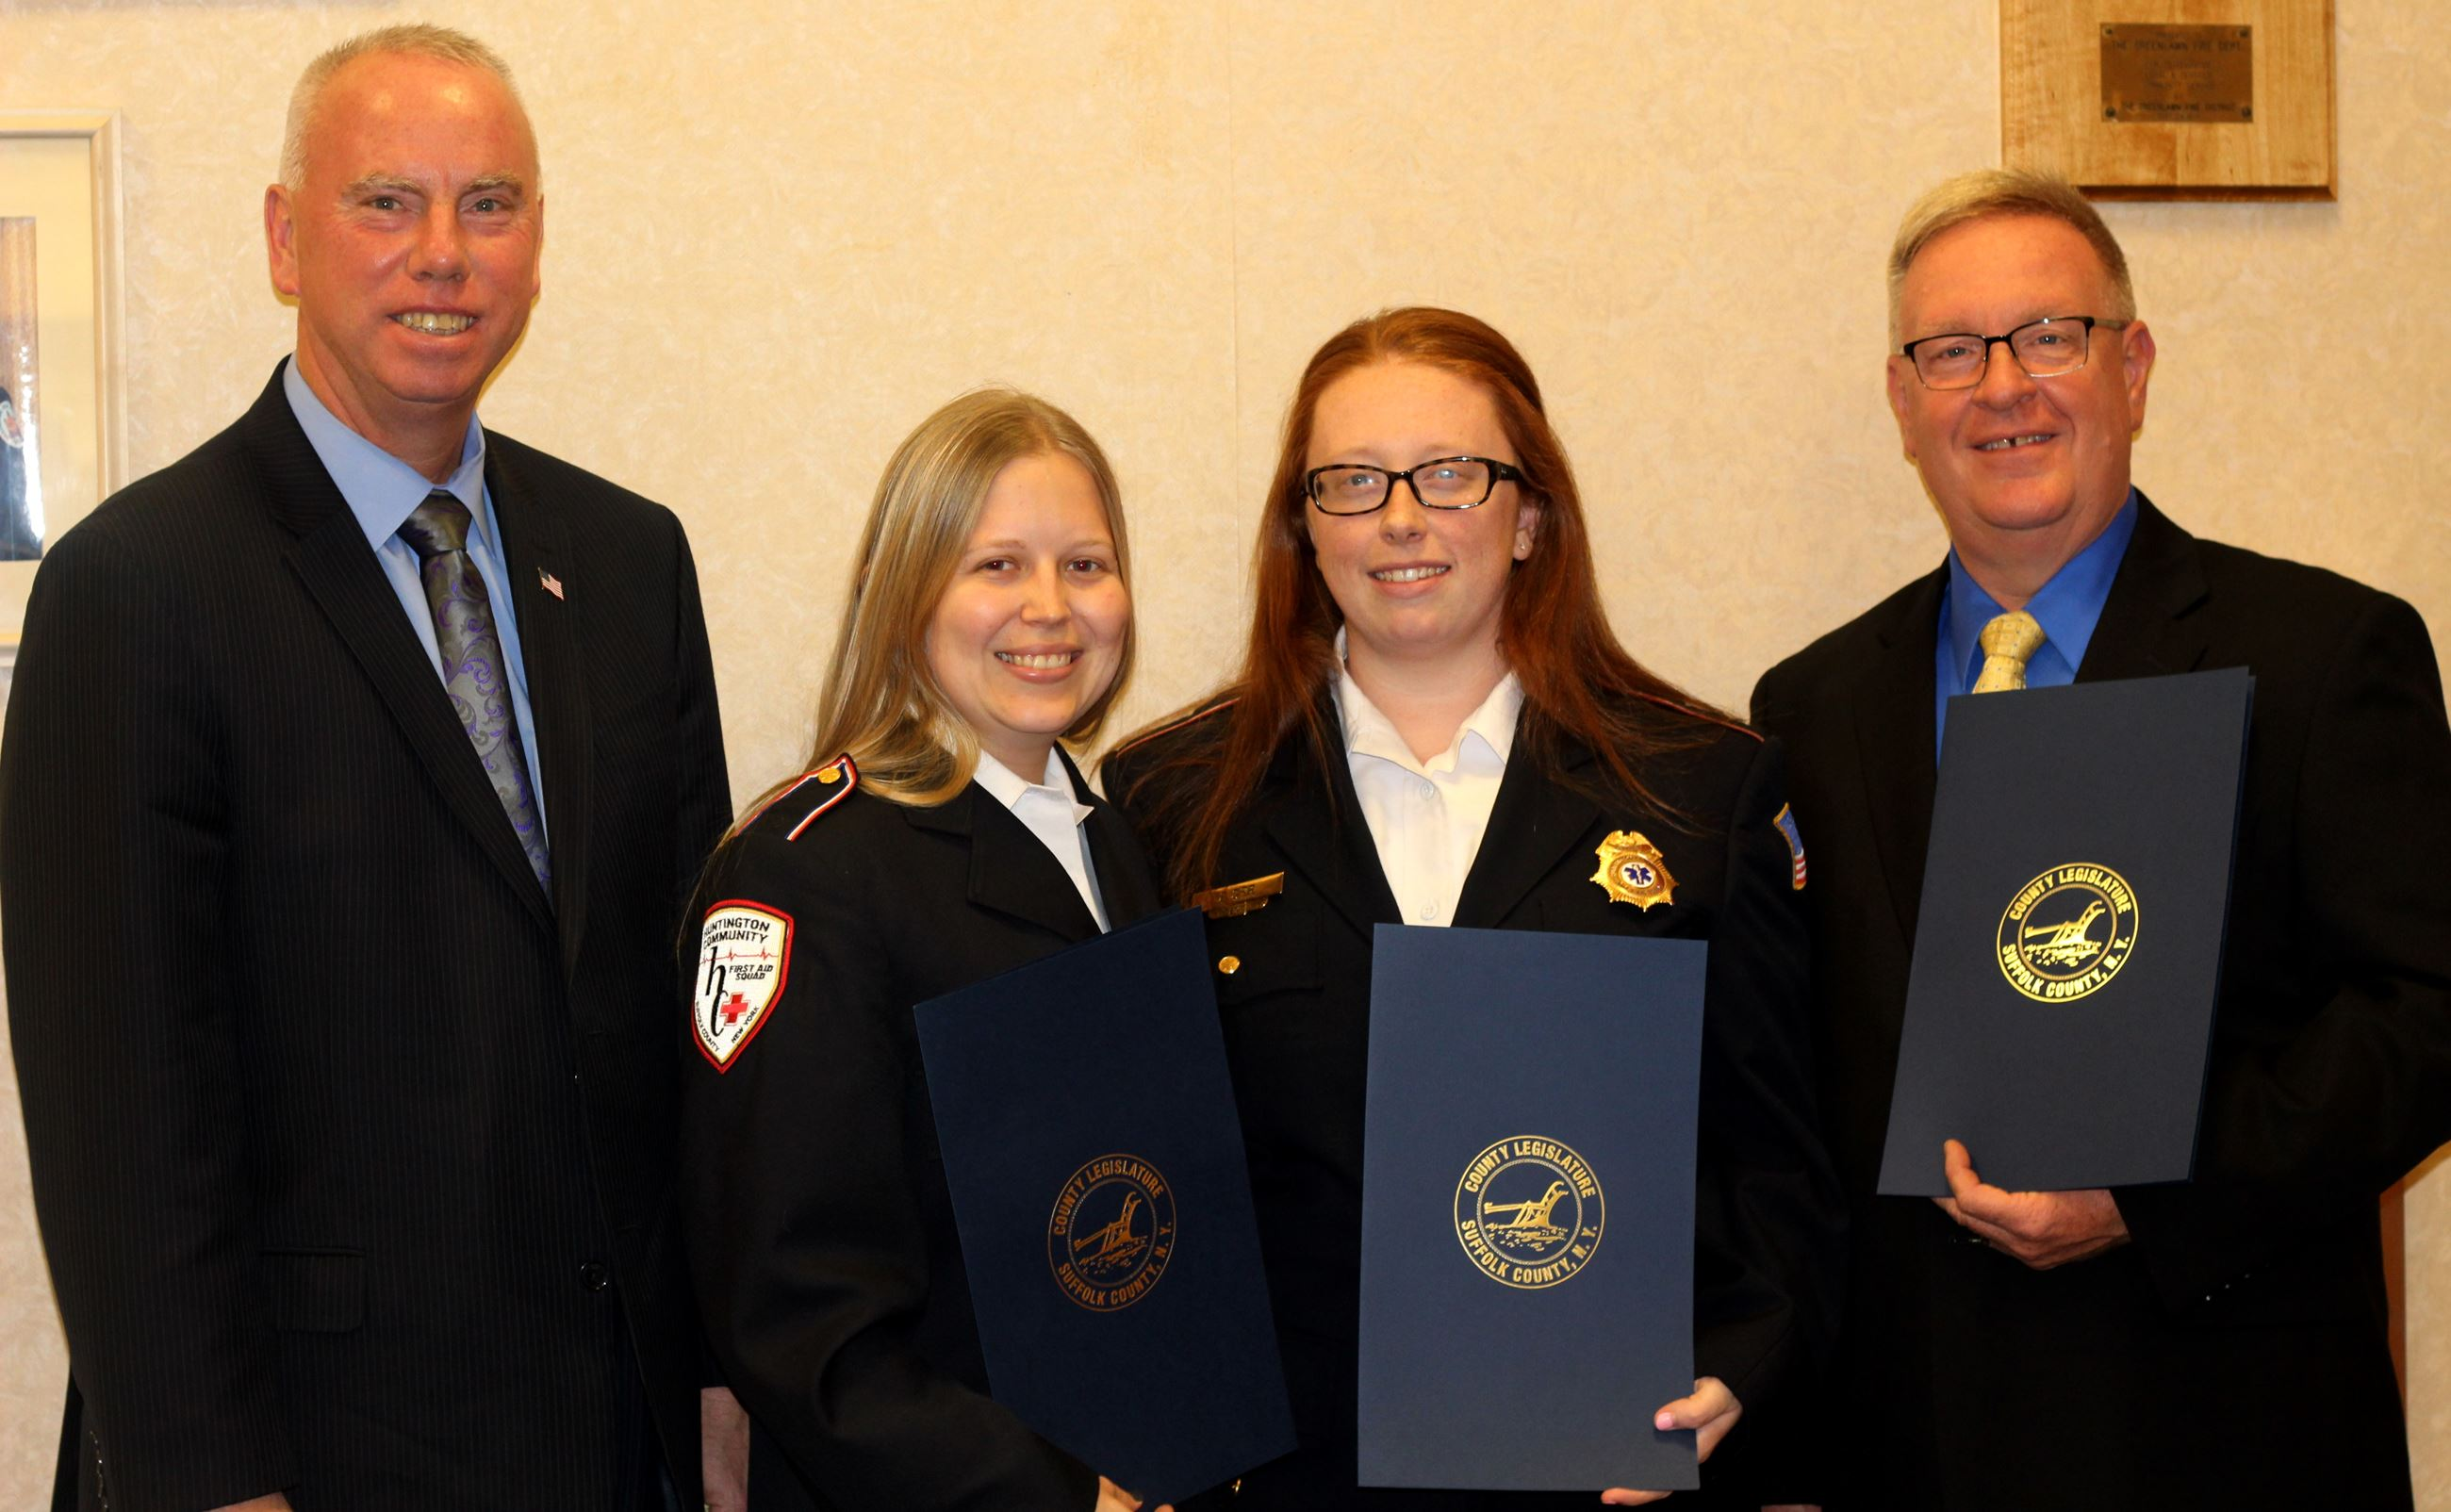 Huntington Community First Aid Squad REMSCO Award Recipients